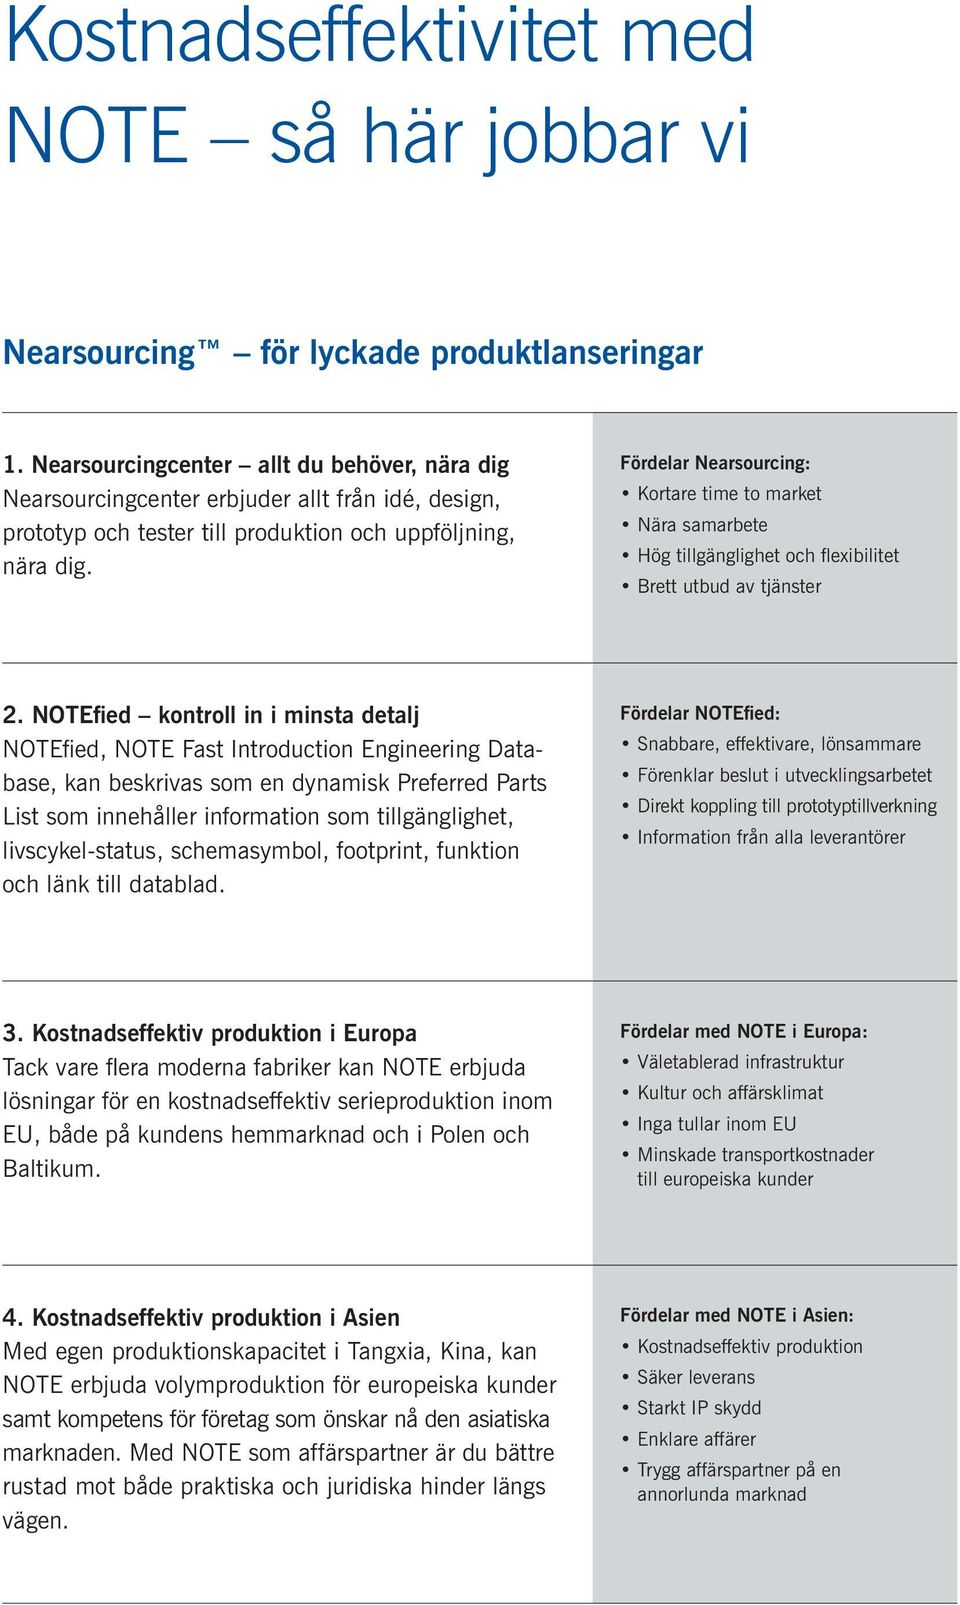 NOTEfied kontroll in i minsta detalj NOTEfied, NOTE Fast Introduction Engineering Database, kan beskrivas som en dynamisk Preferred Parts List som innehåller information som tillgänglighet,